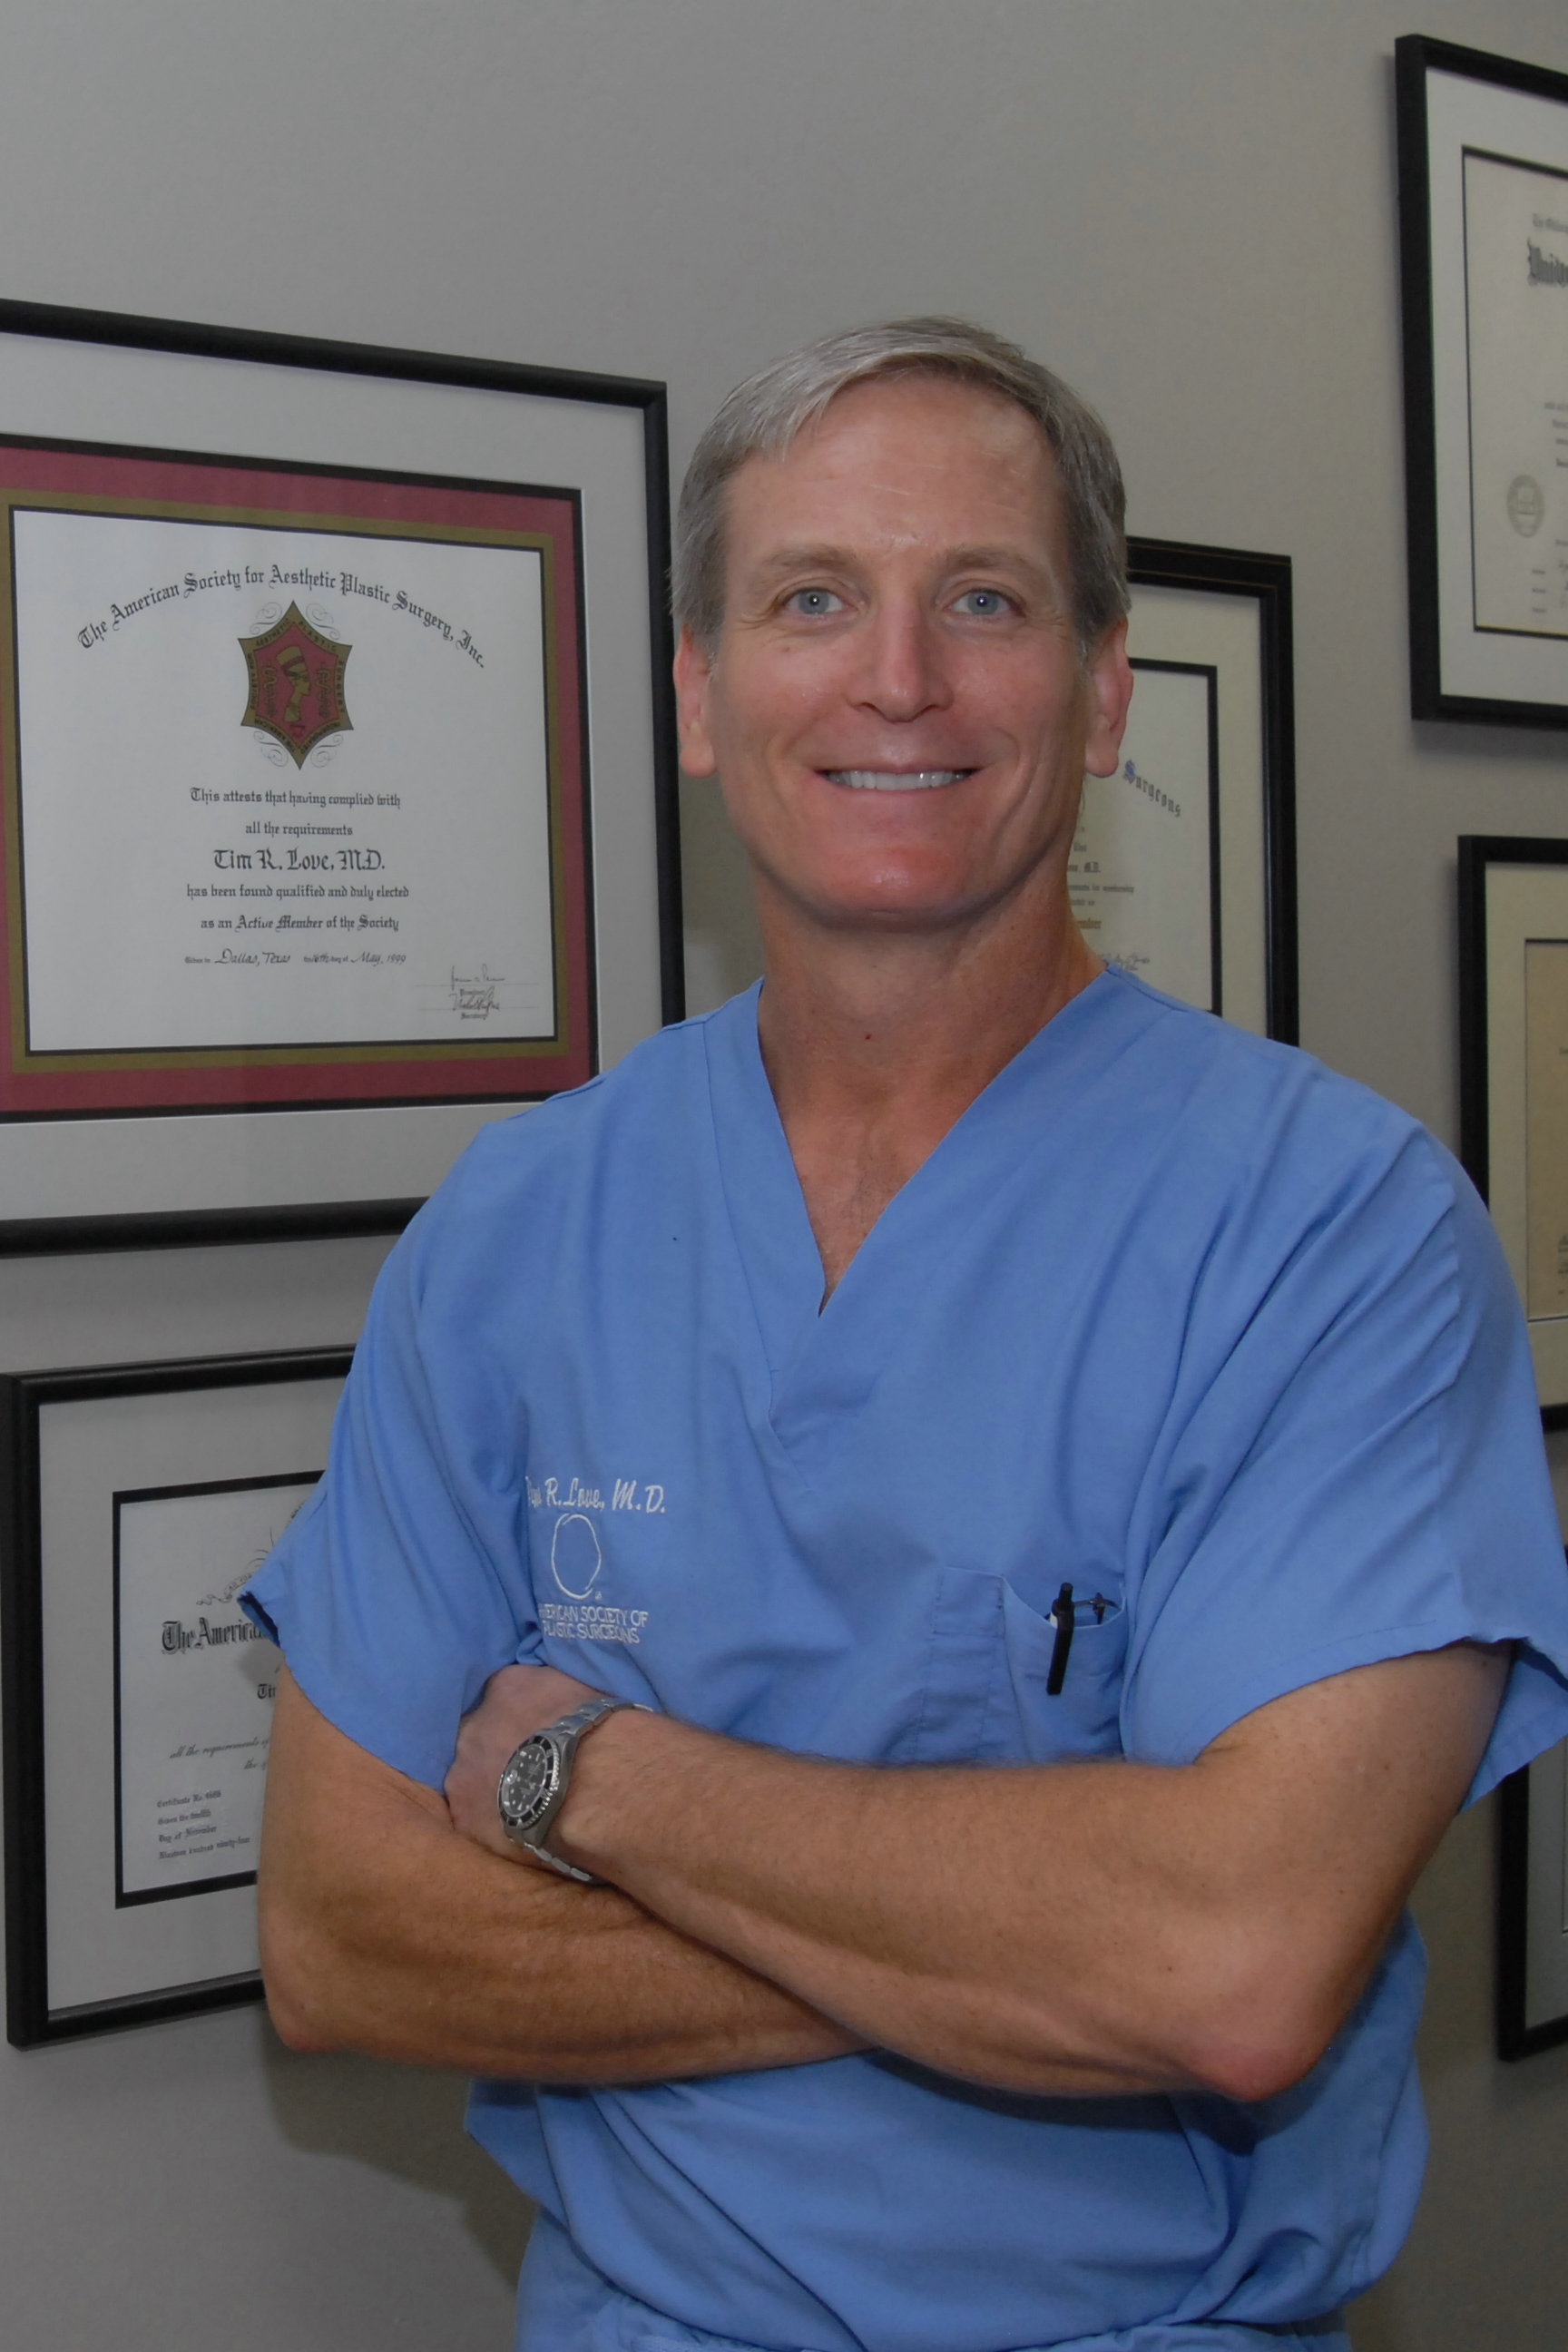 Tim R Love, MD